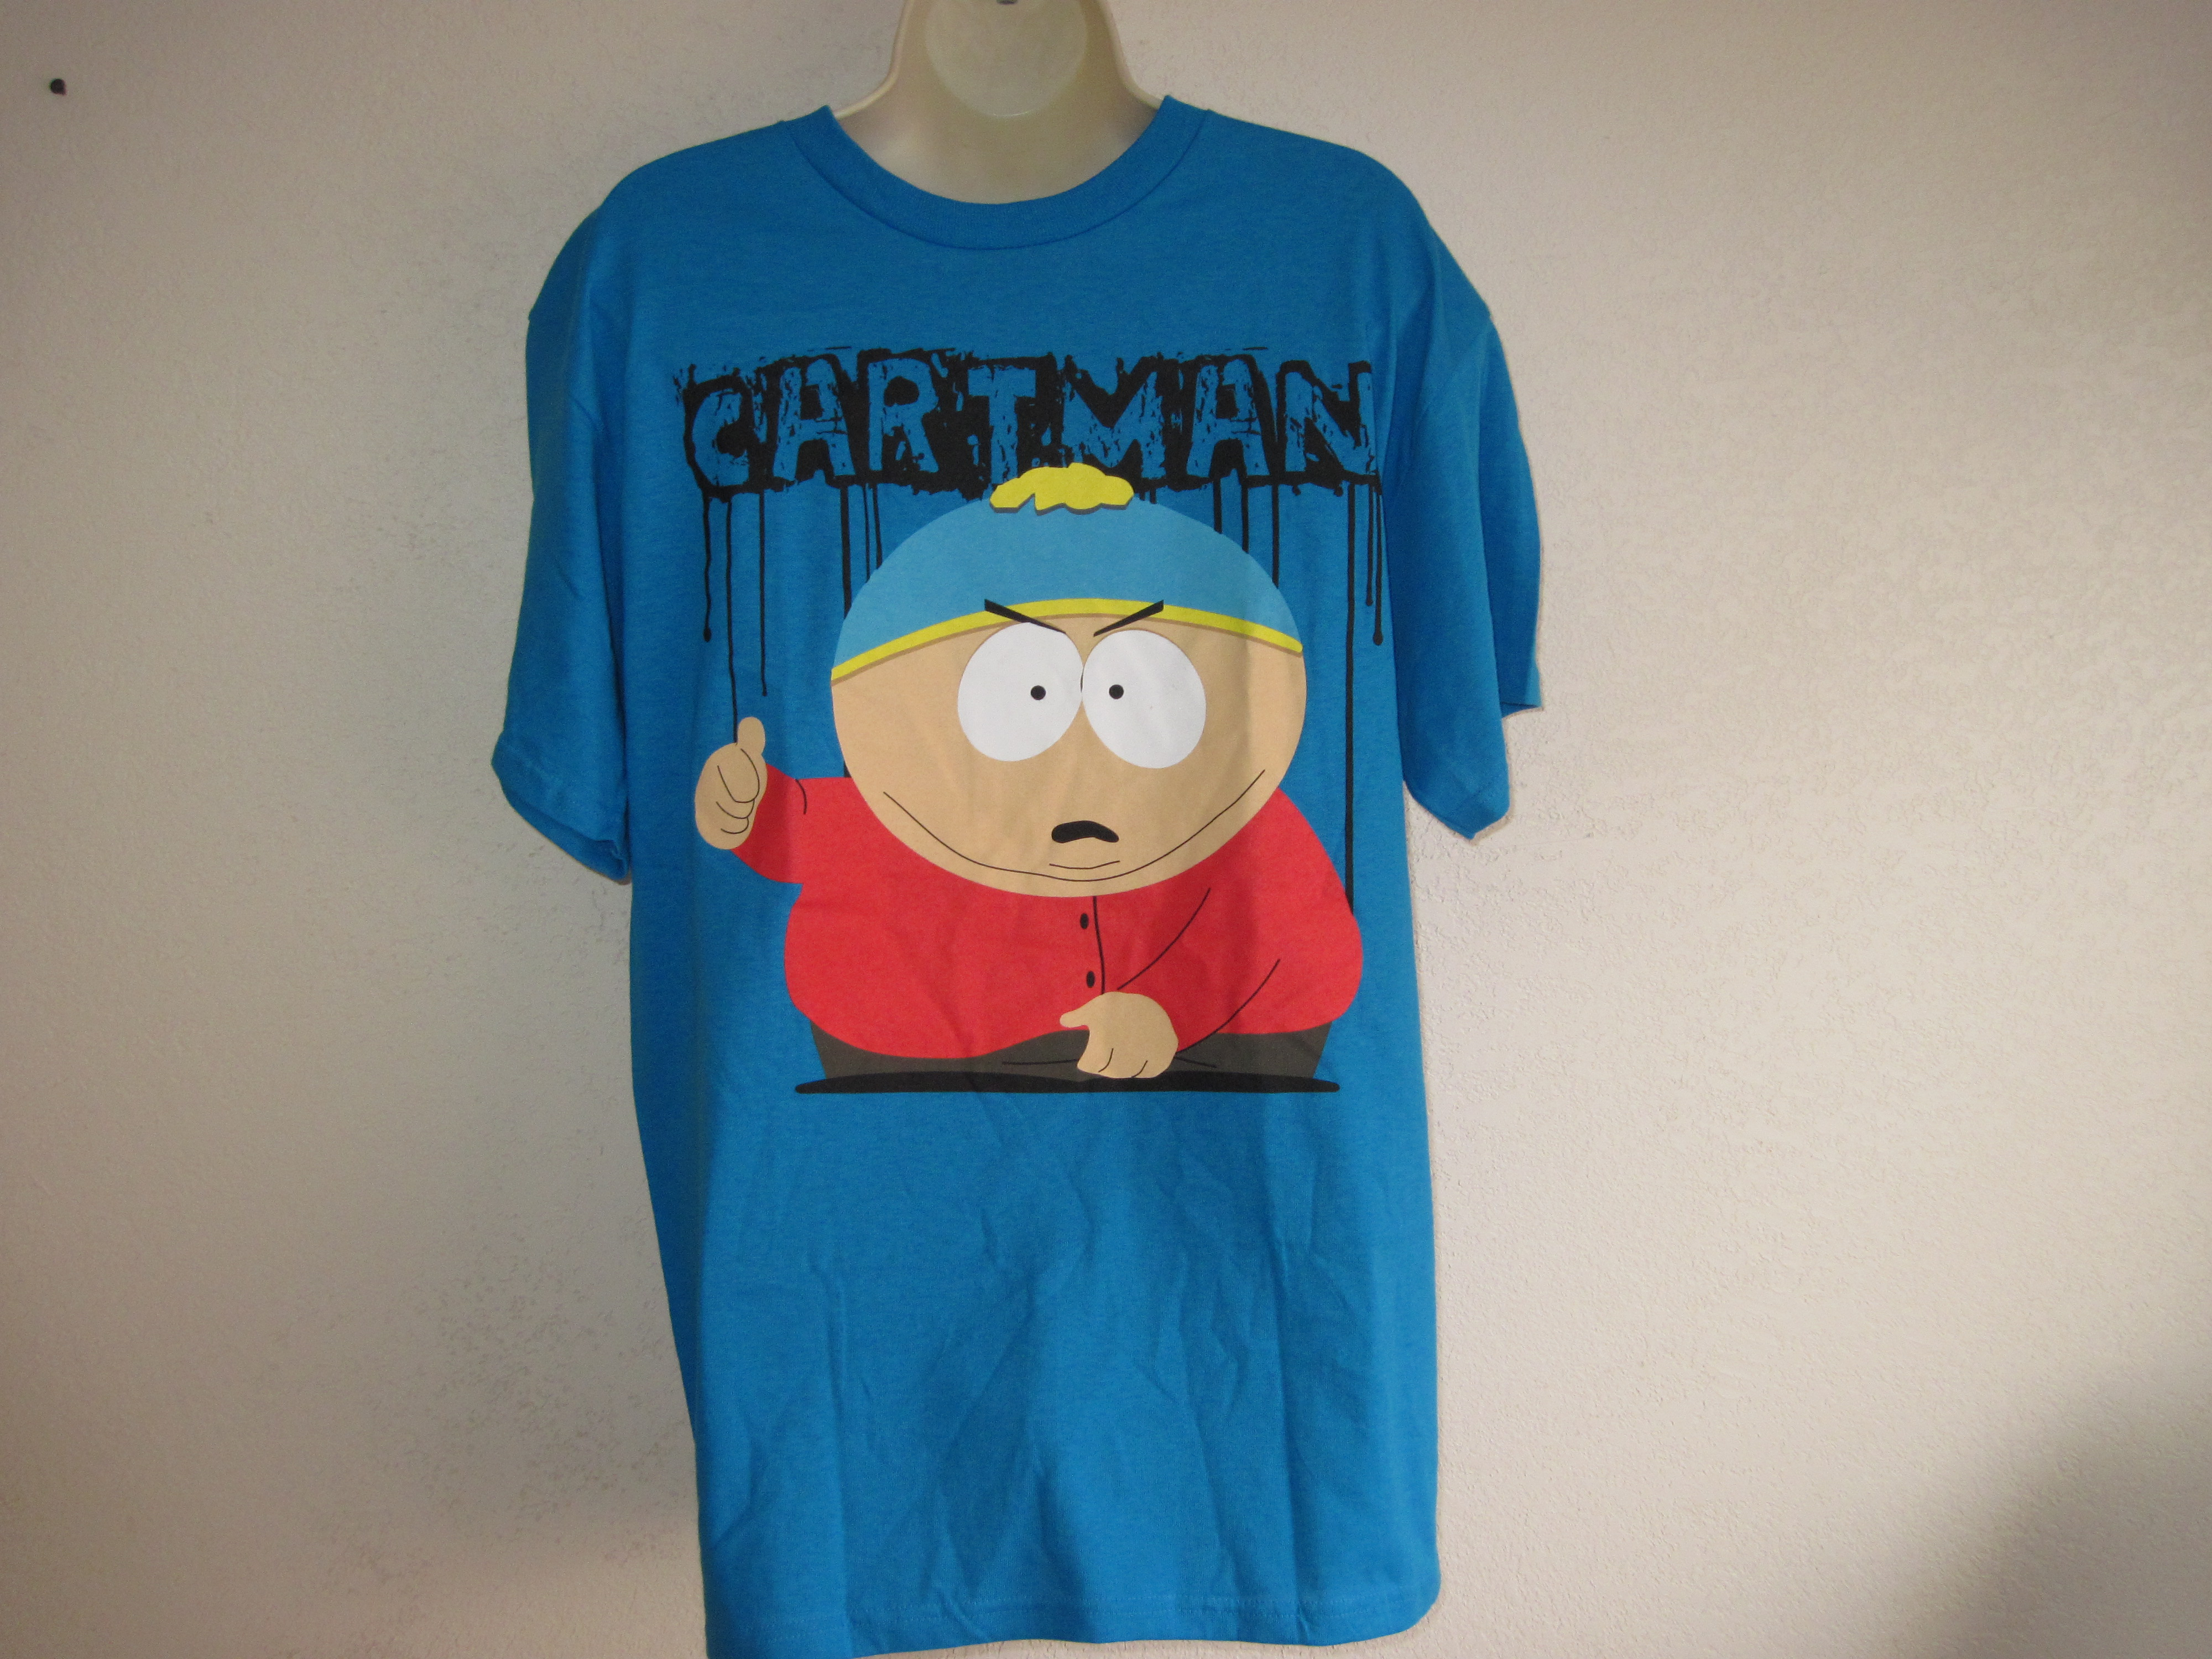 South Park Sz Lg Short Sleeve T-Shirt blue, cartman